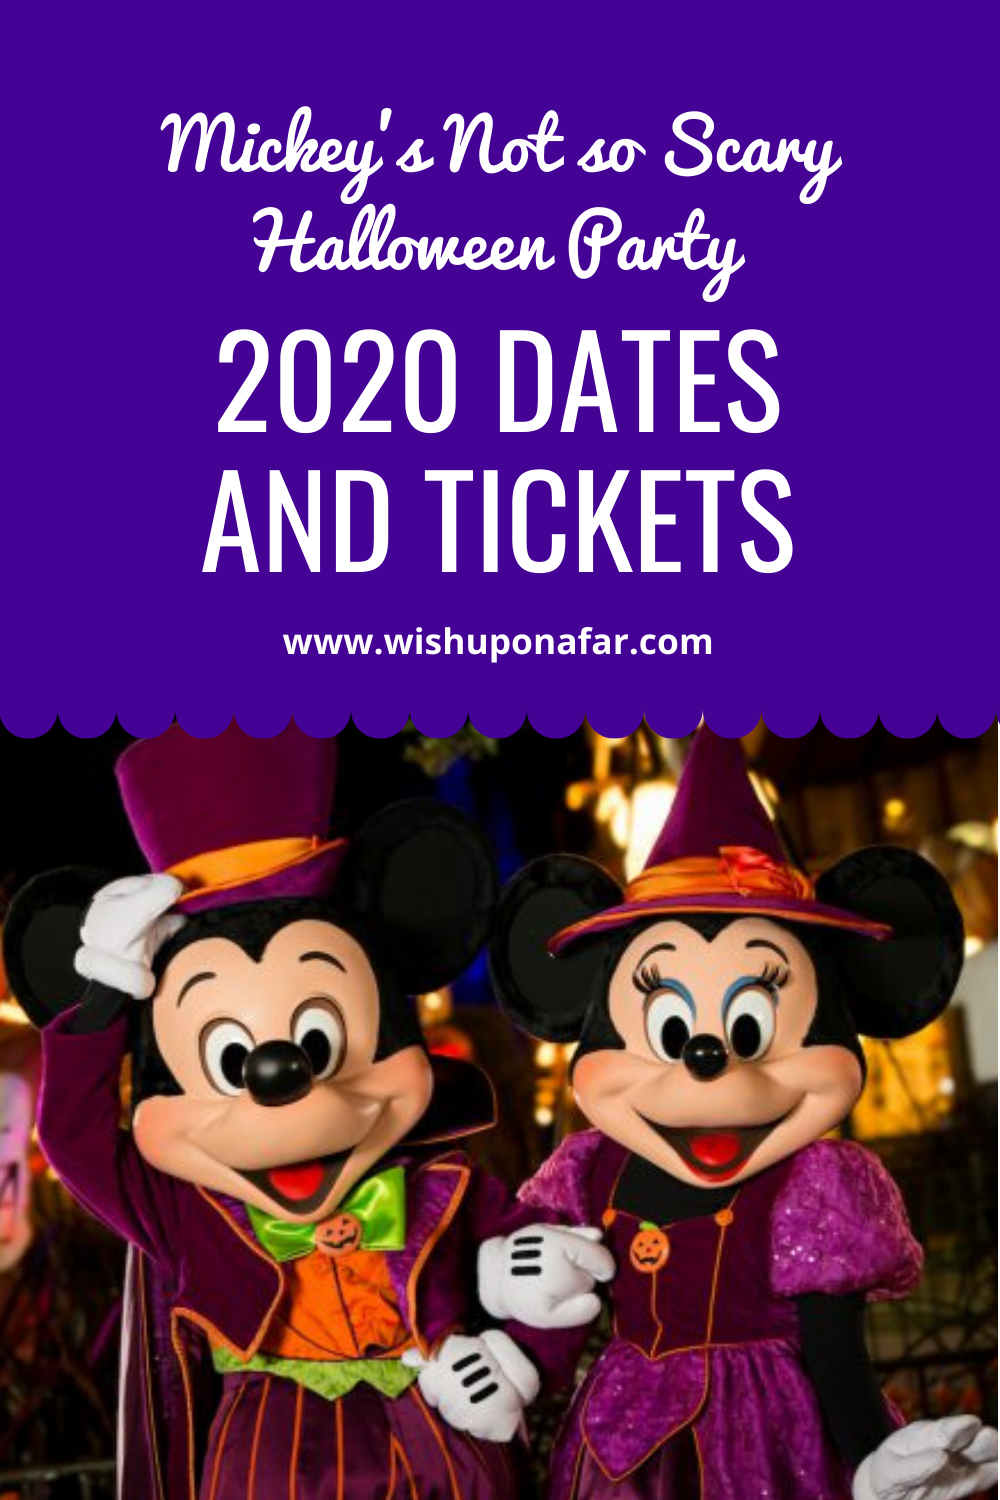 2020 Mickey's Not So Scary Halloween Party Dates and